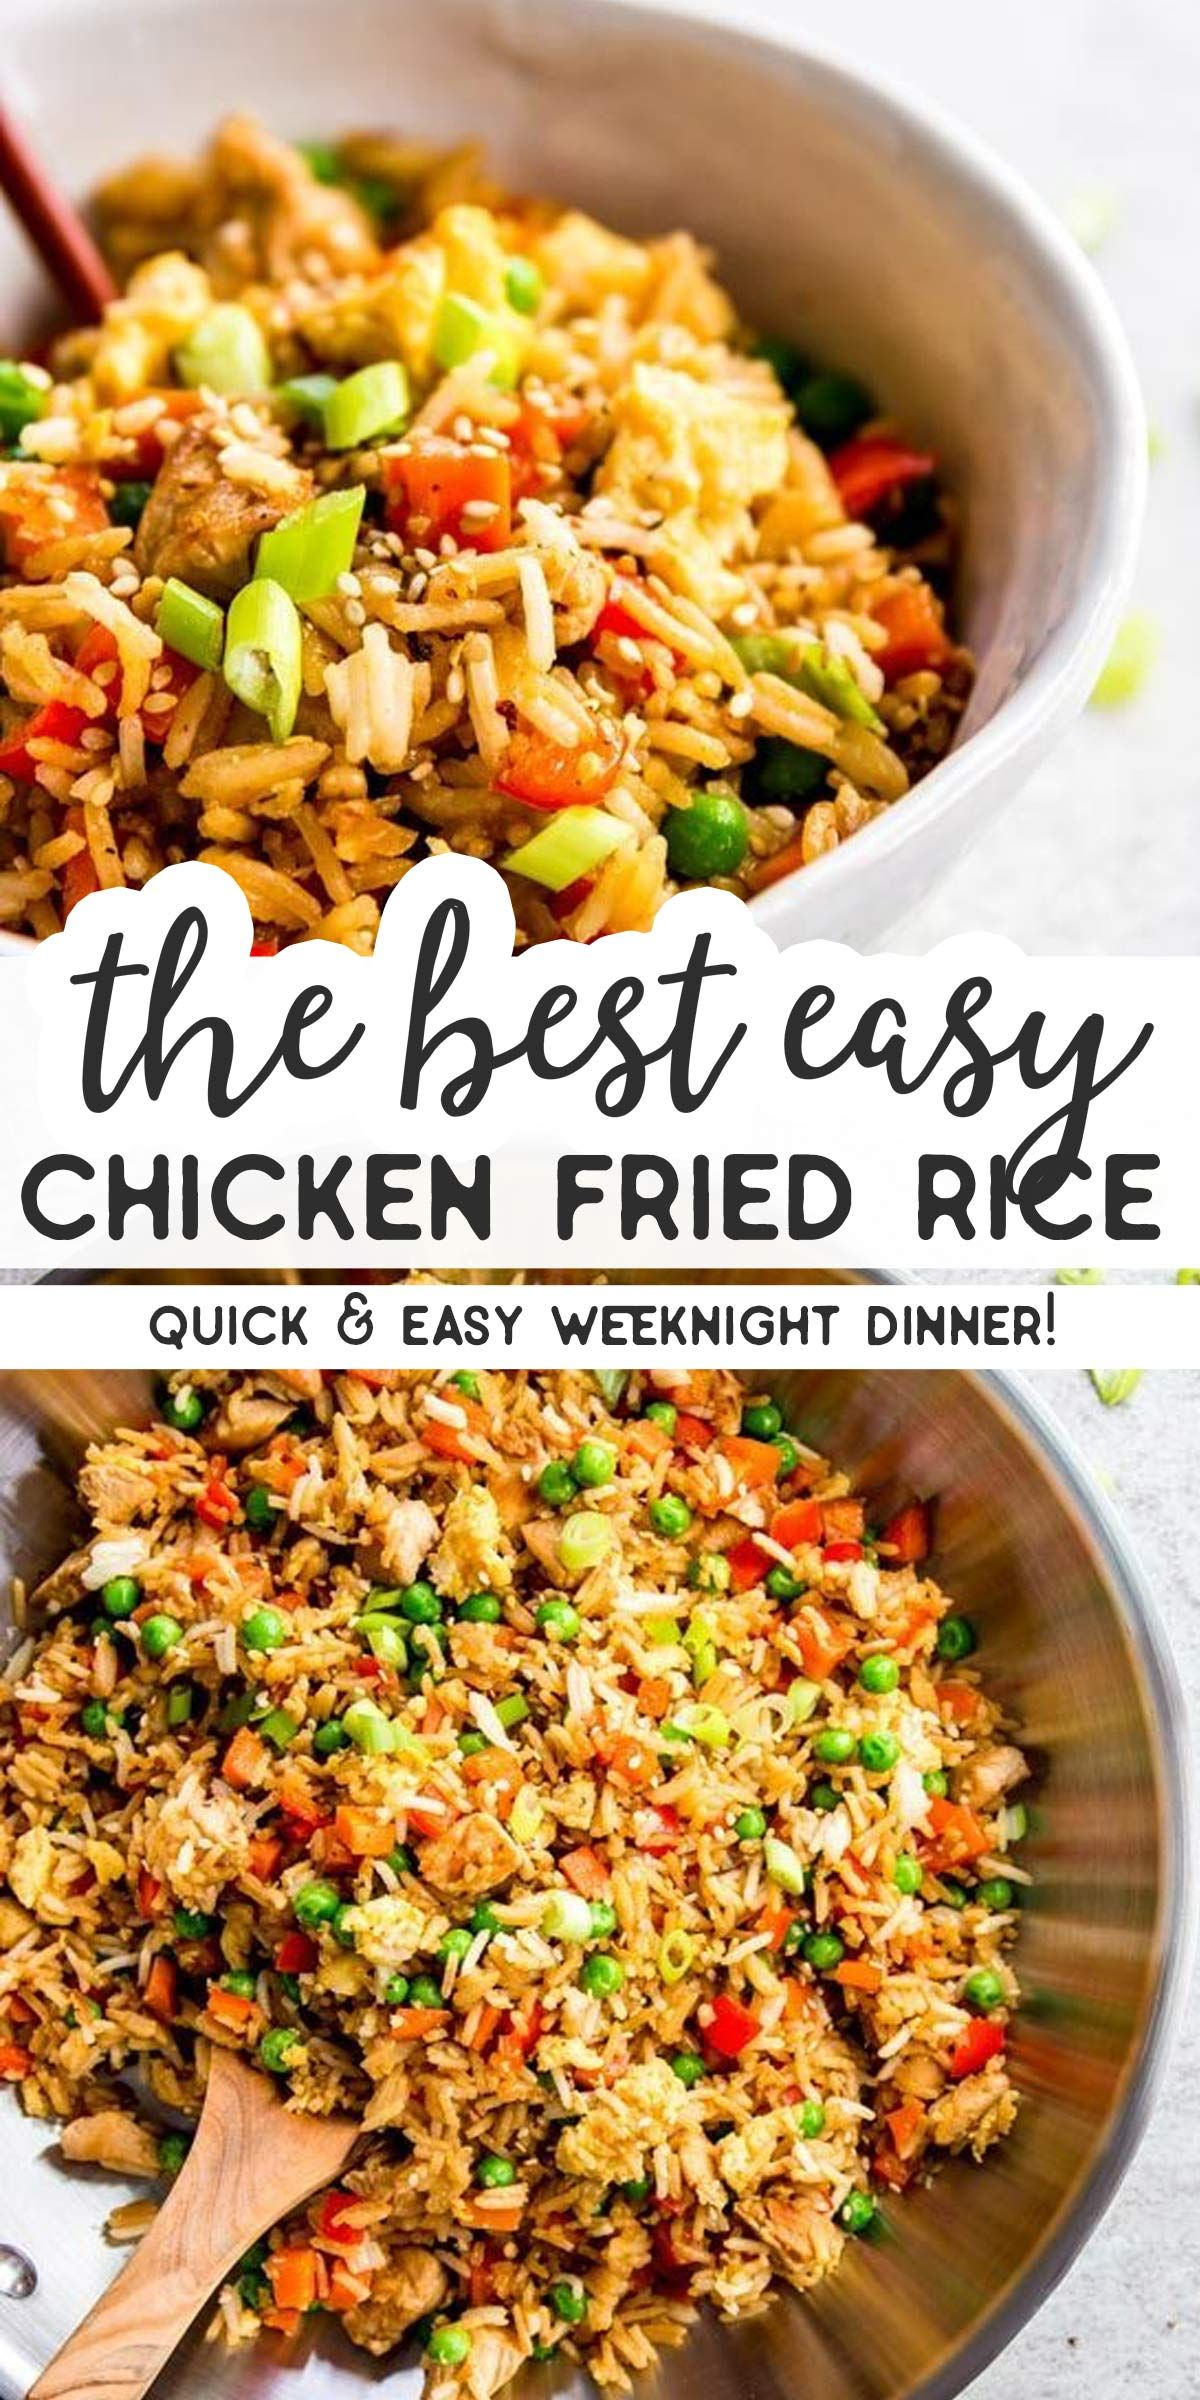 Photo of Easy Chicken Fried Rice